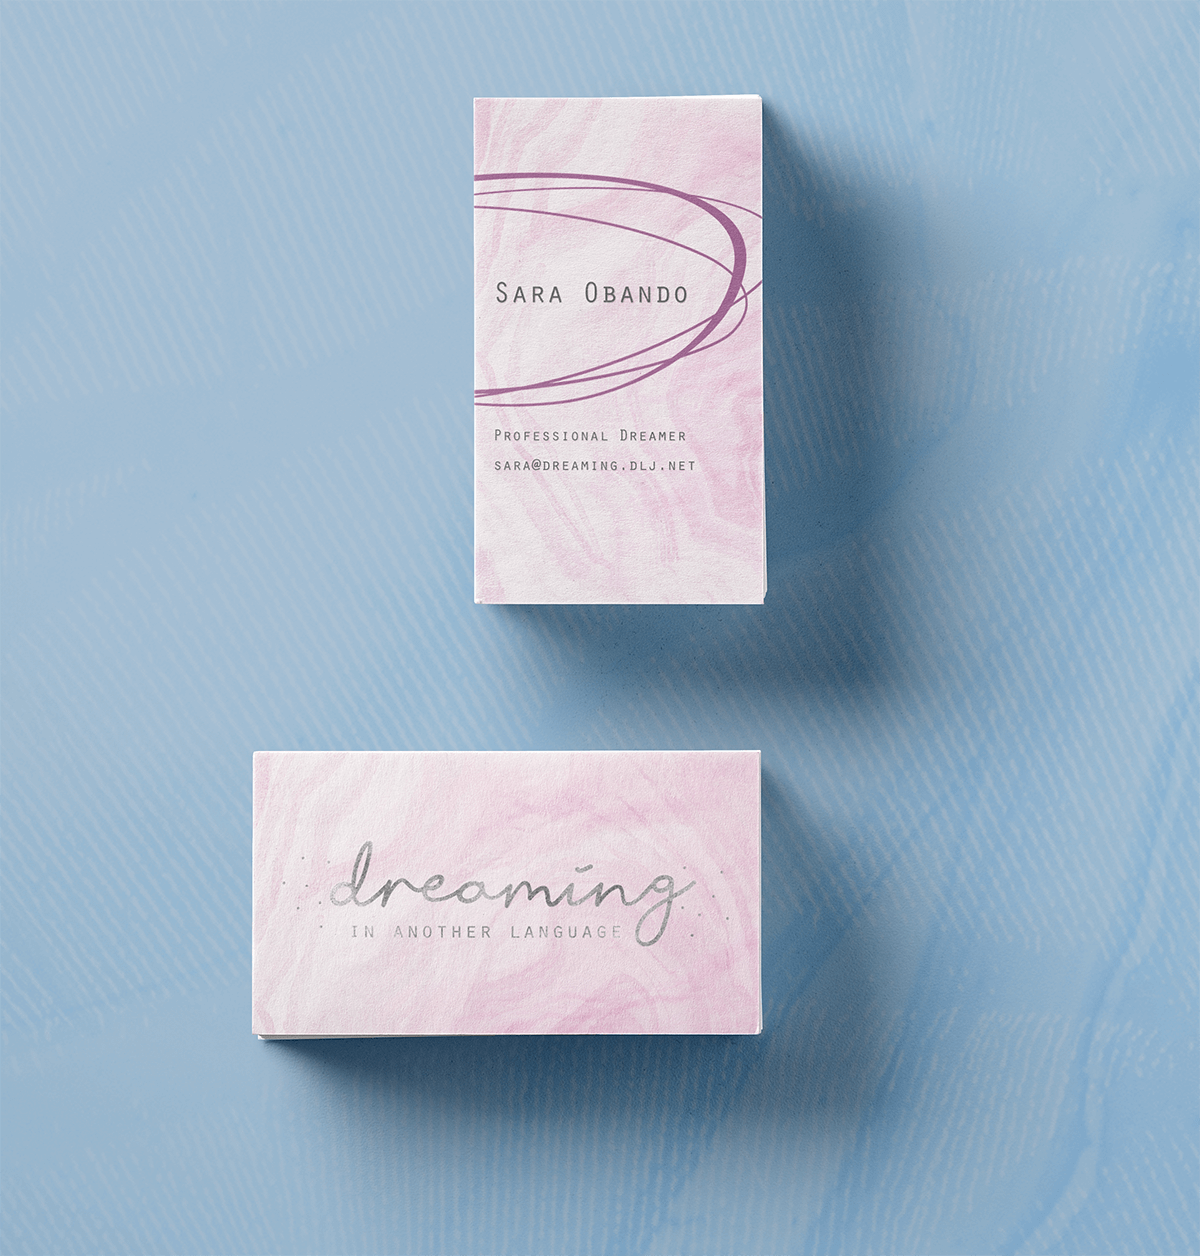 Close up of the business card design for Dreaming in Another Language